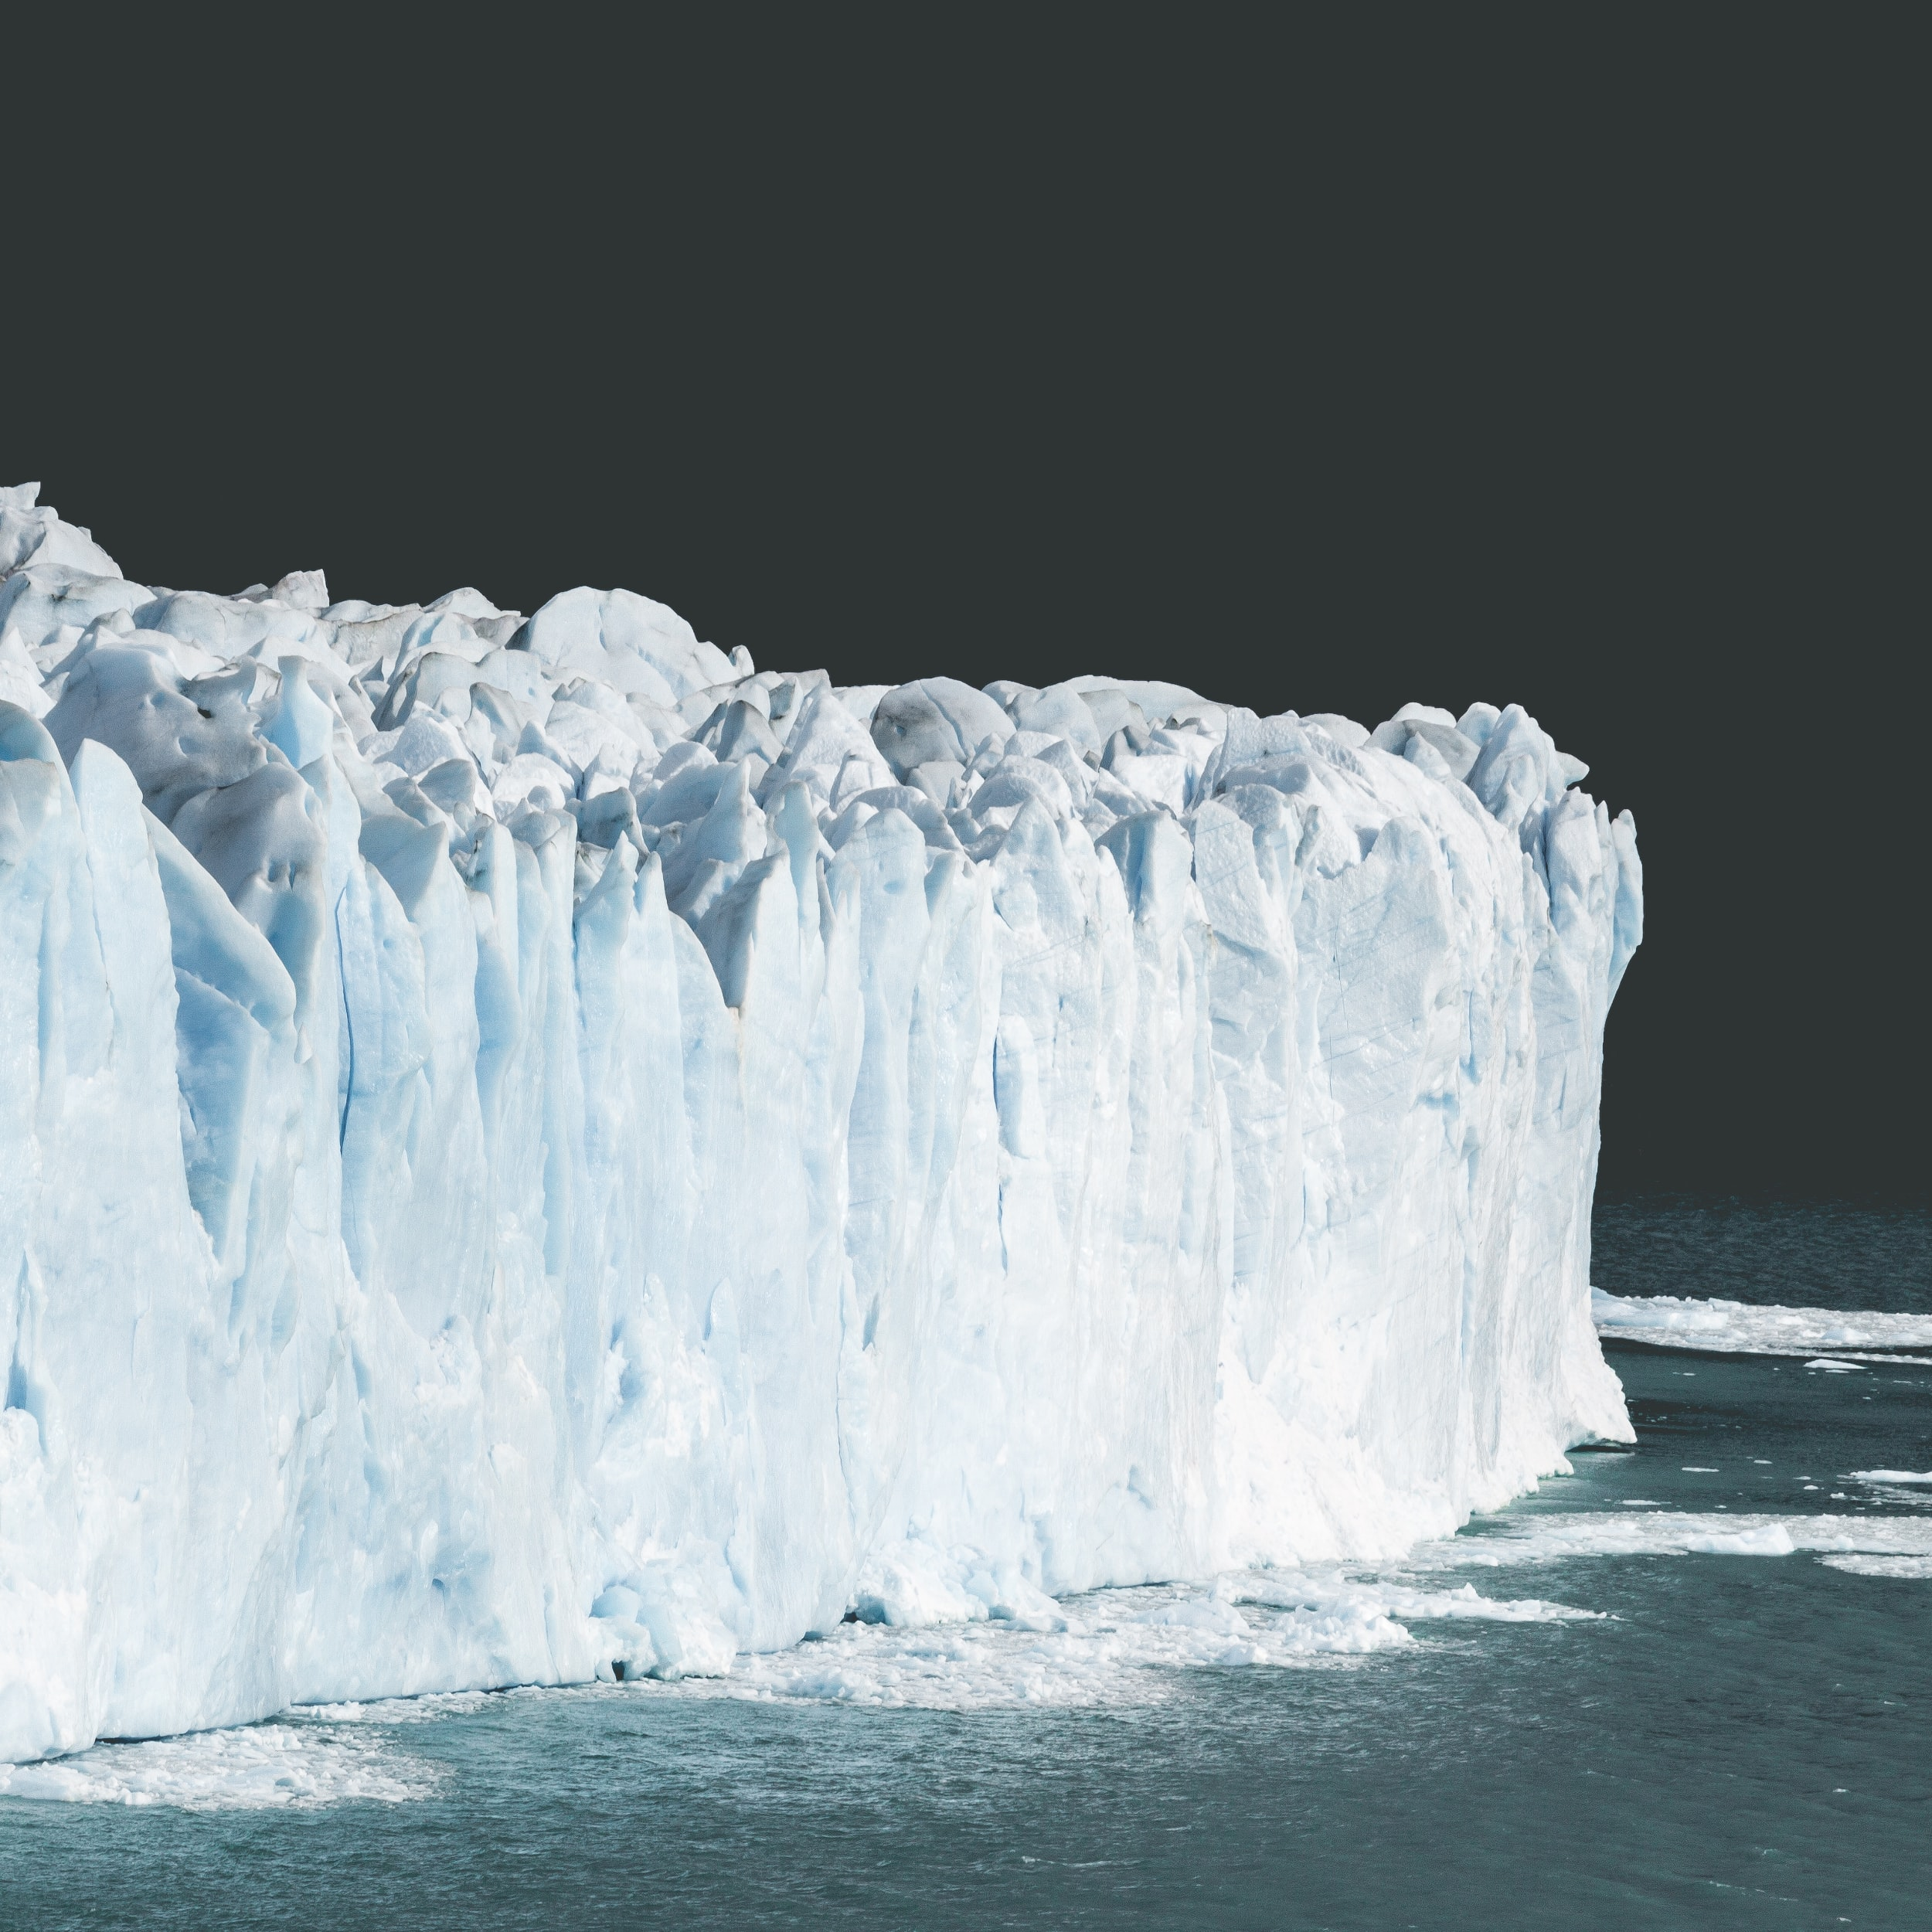 A giant wall of ice sits in the ocean against a dark sky